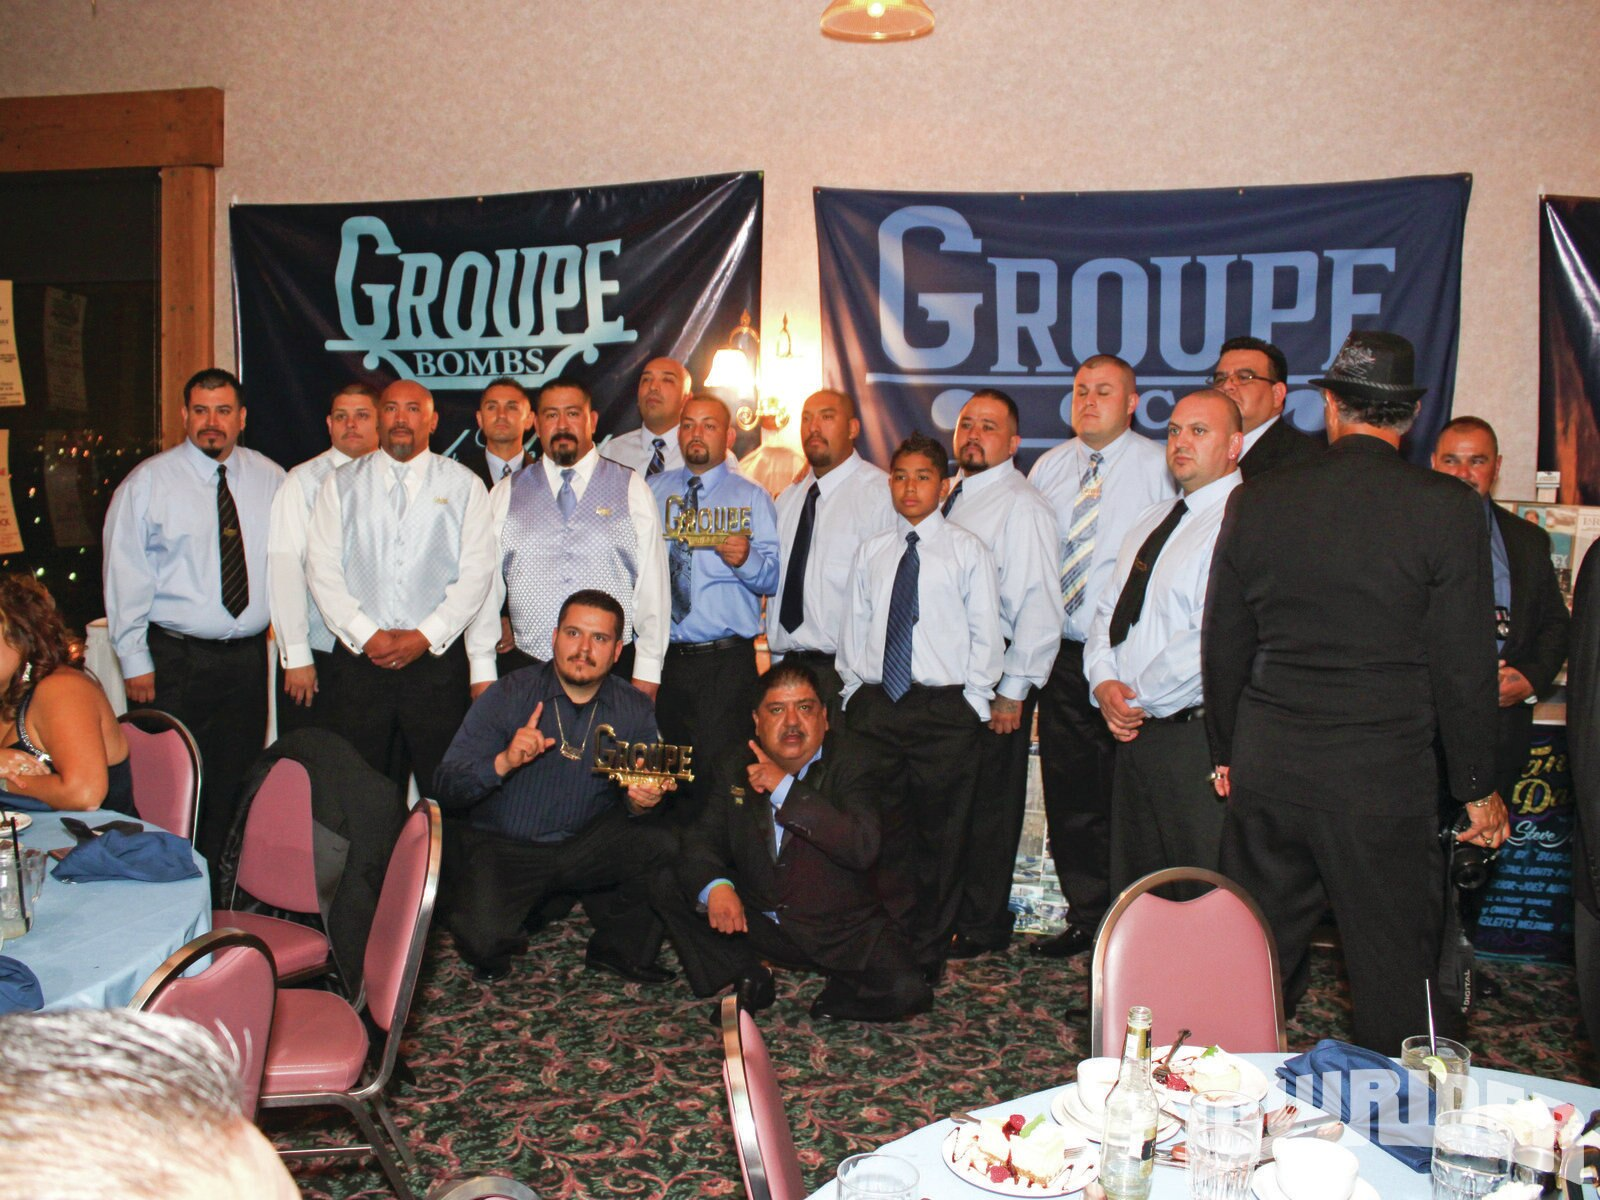 1203-lrmp-01-o-groupe-car-club-40th-anniversary-club-members1